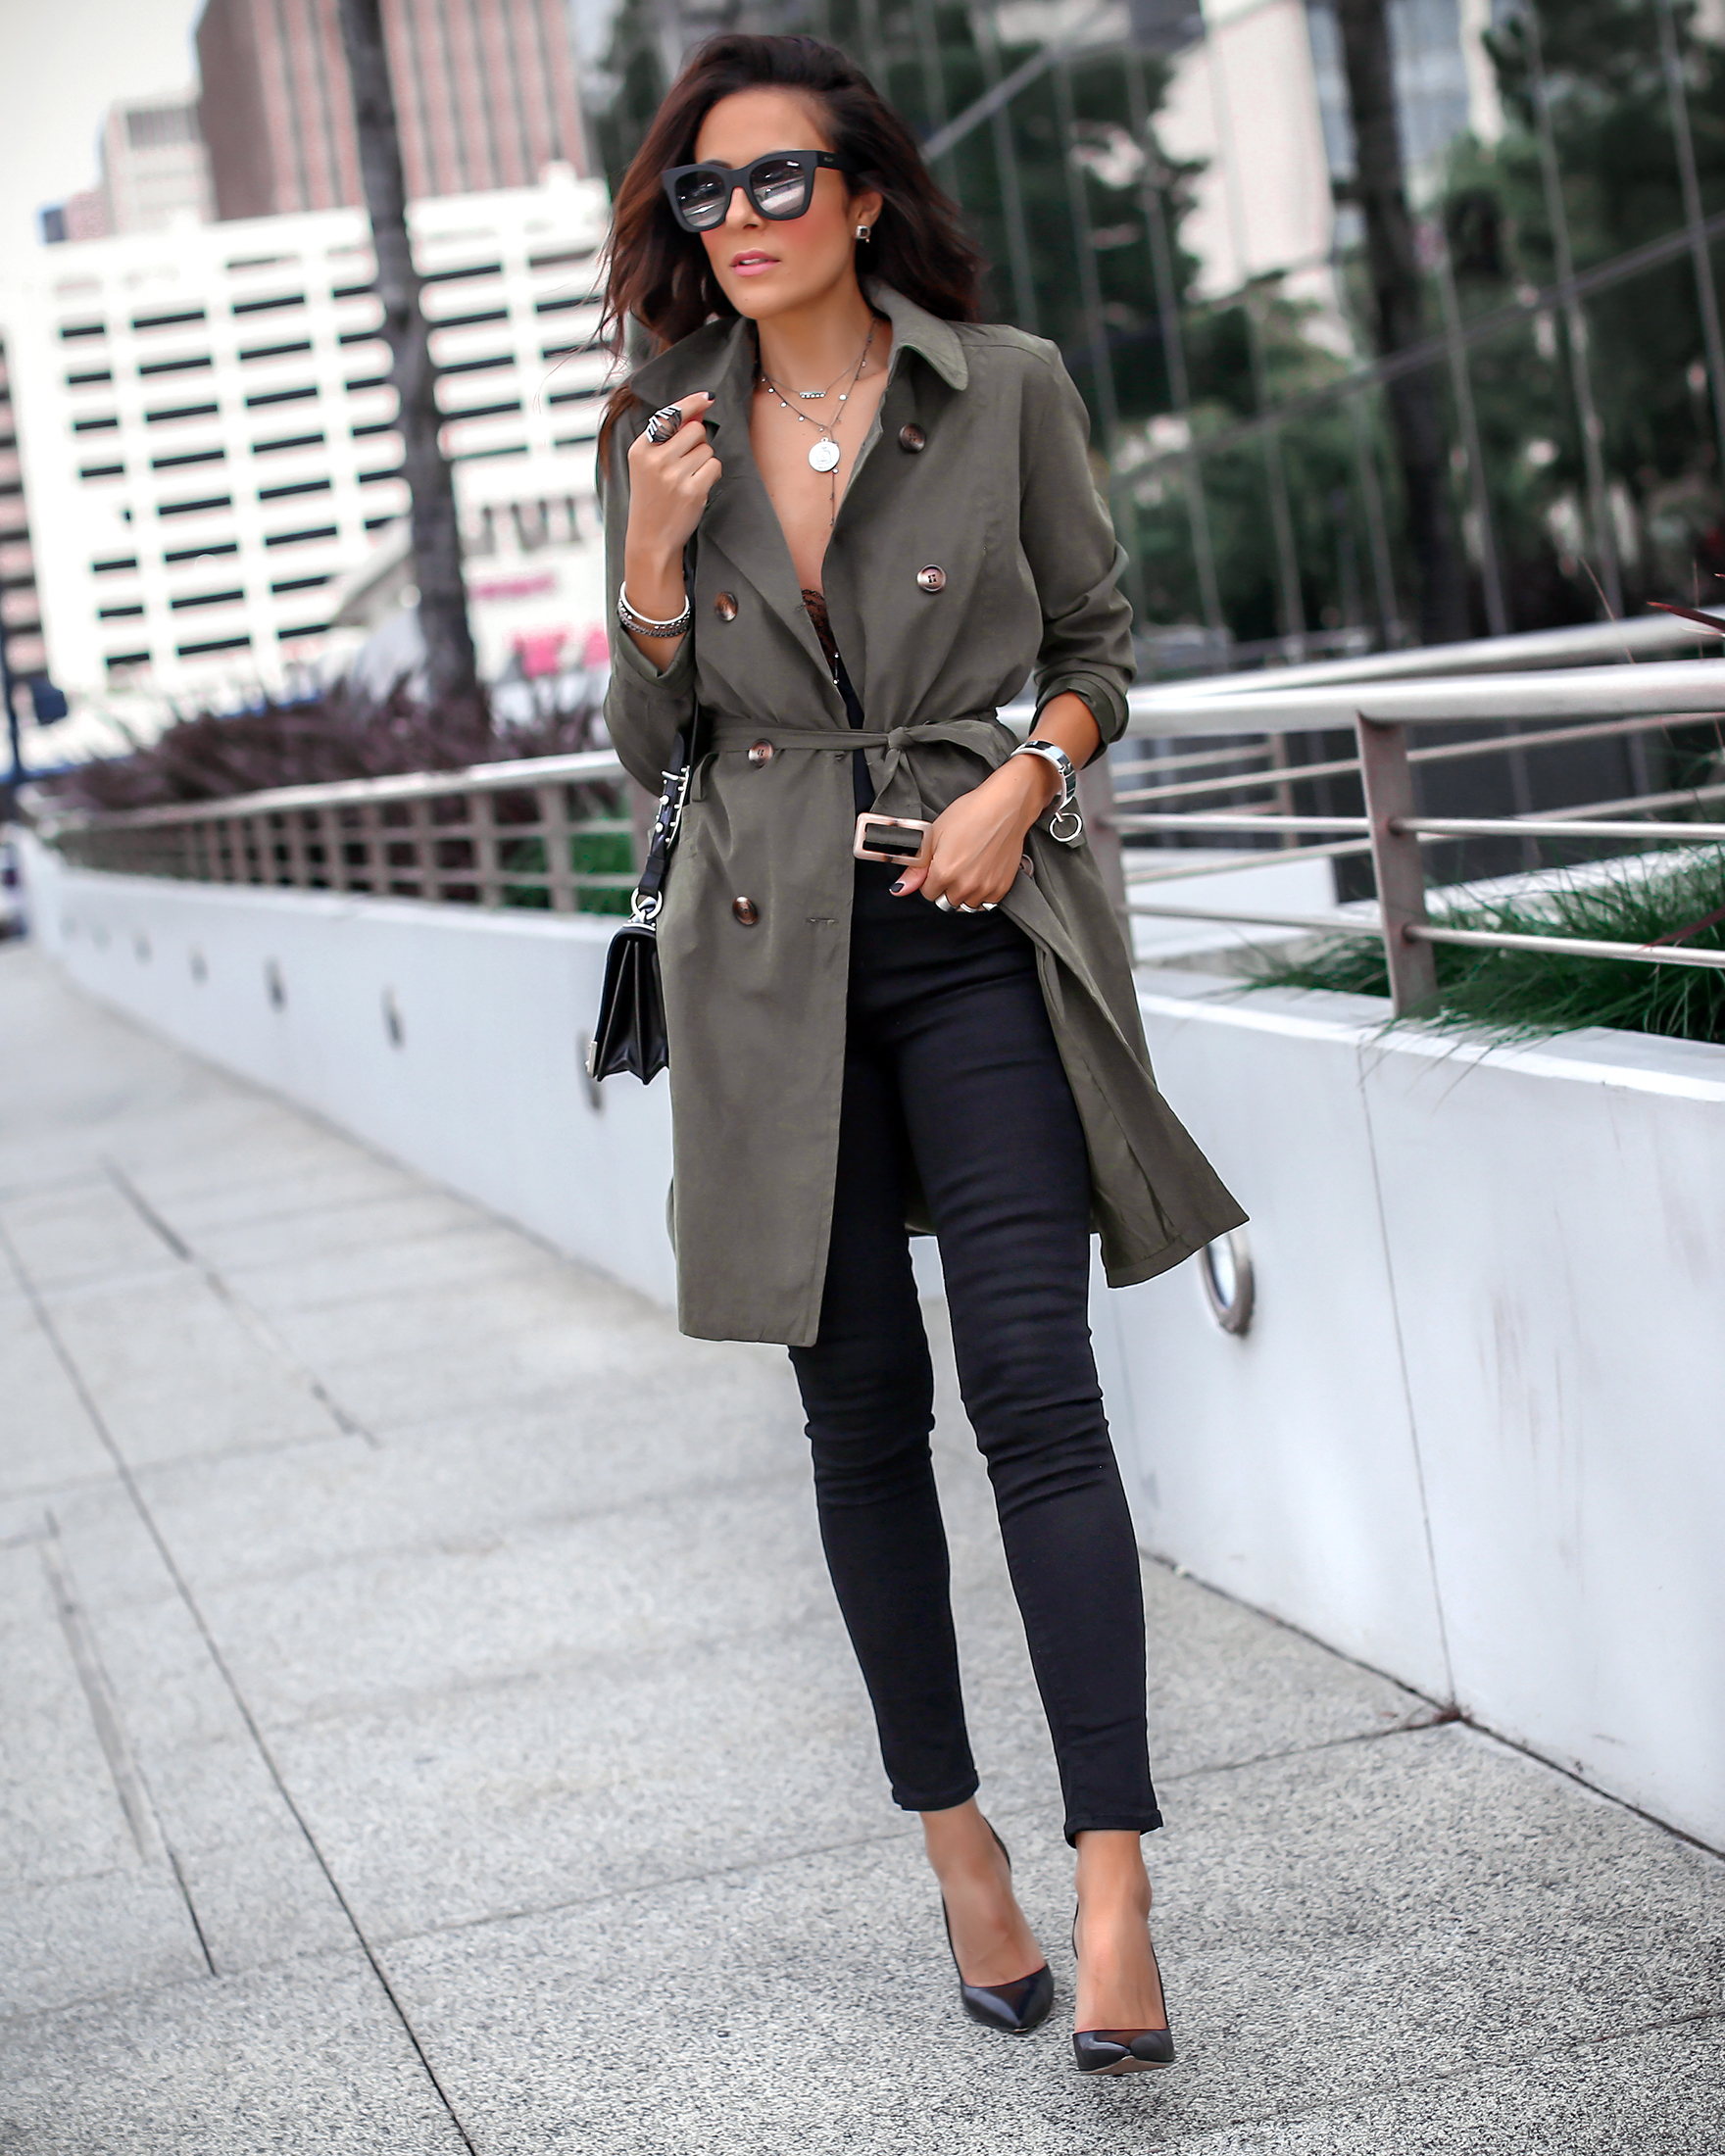 Brunette Woman Walking in Trench and Heels